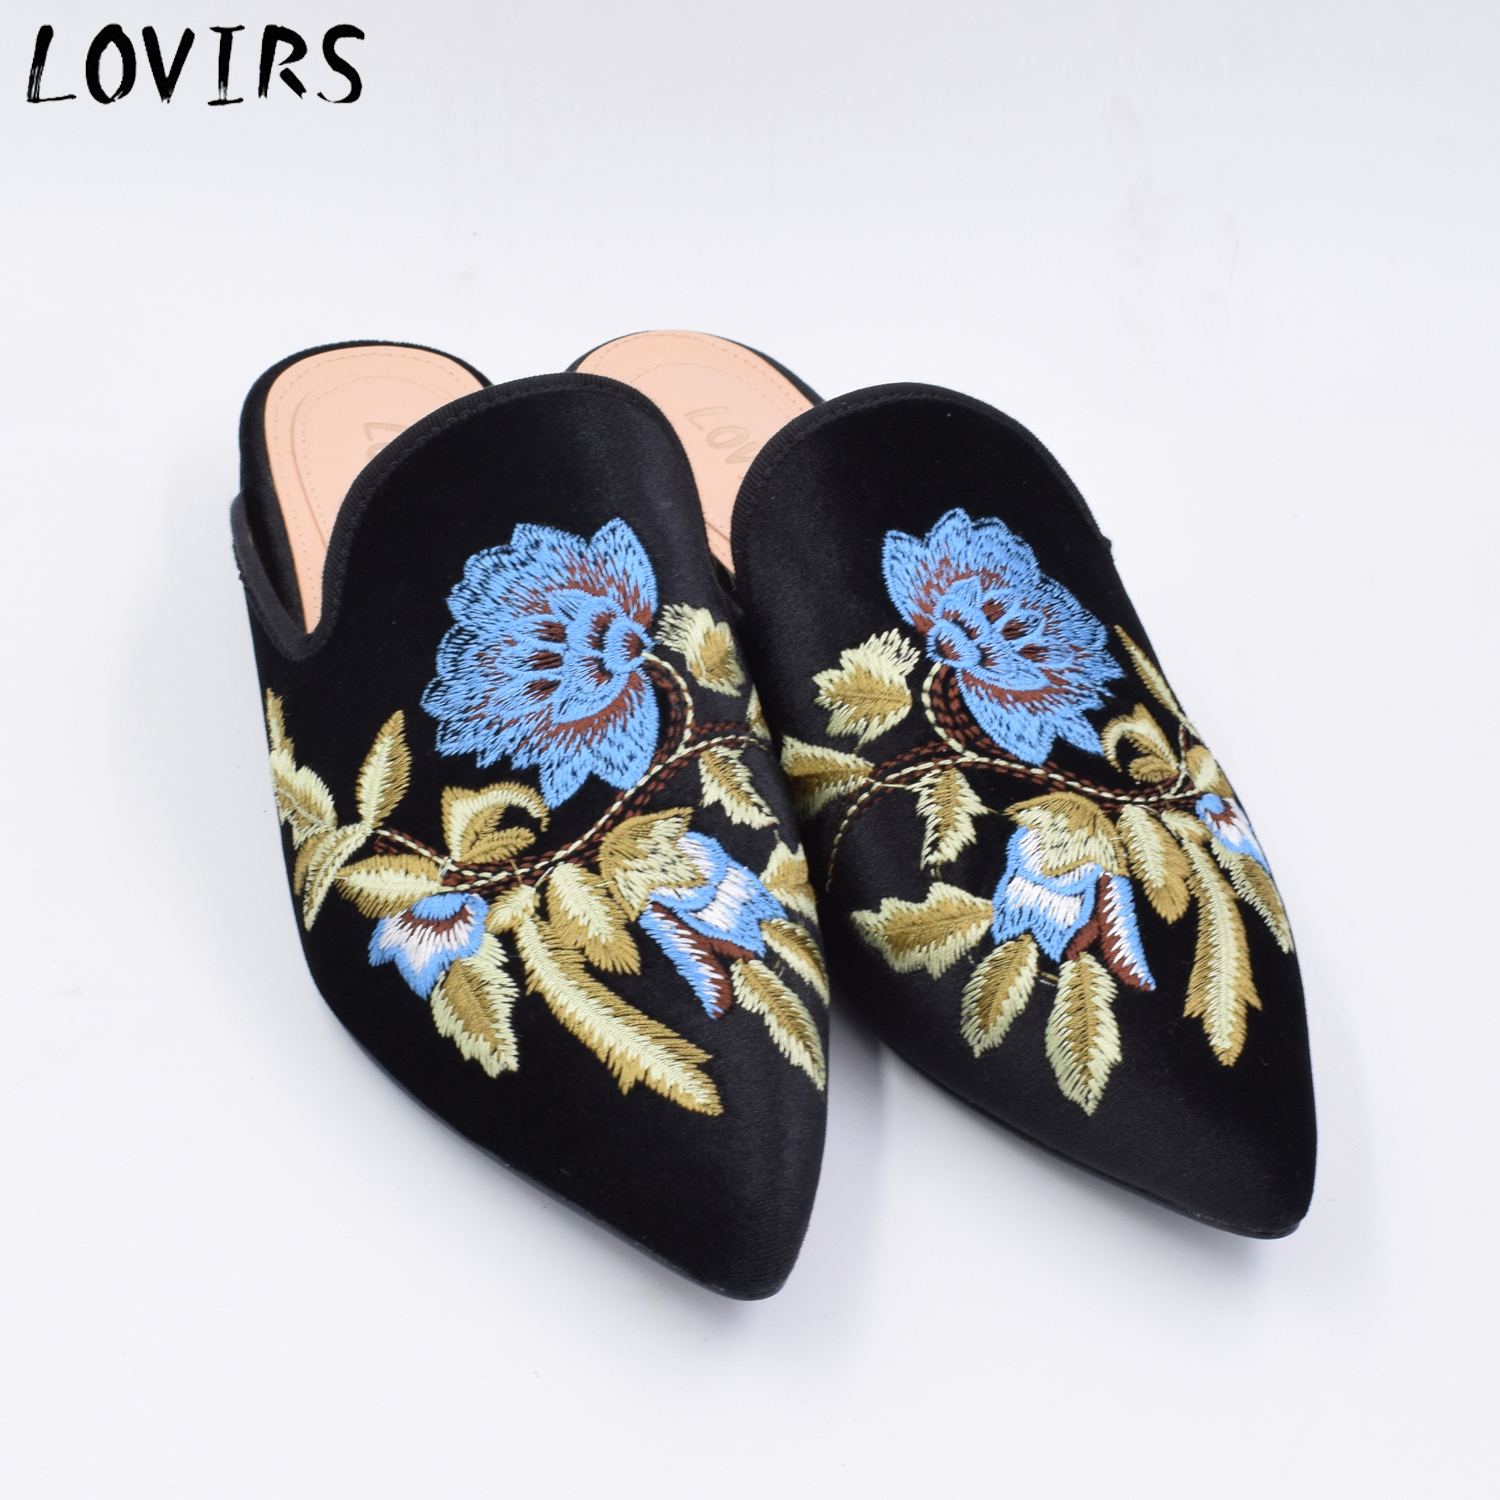 Womens New Mules Shoes Bee Embroidery Slippers fashion Leather Loafers backless